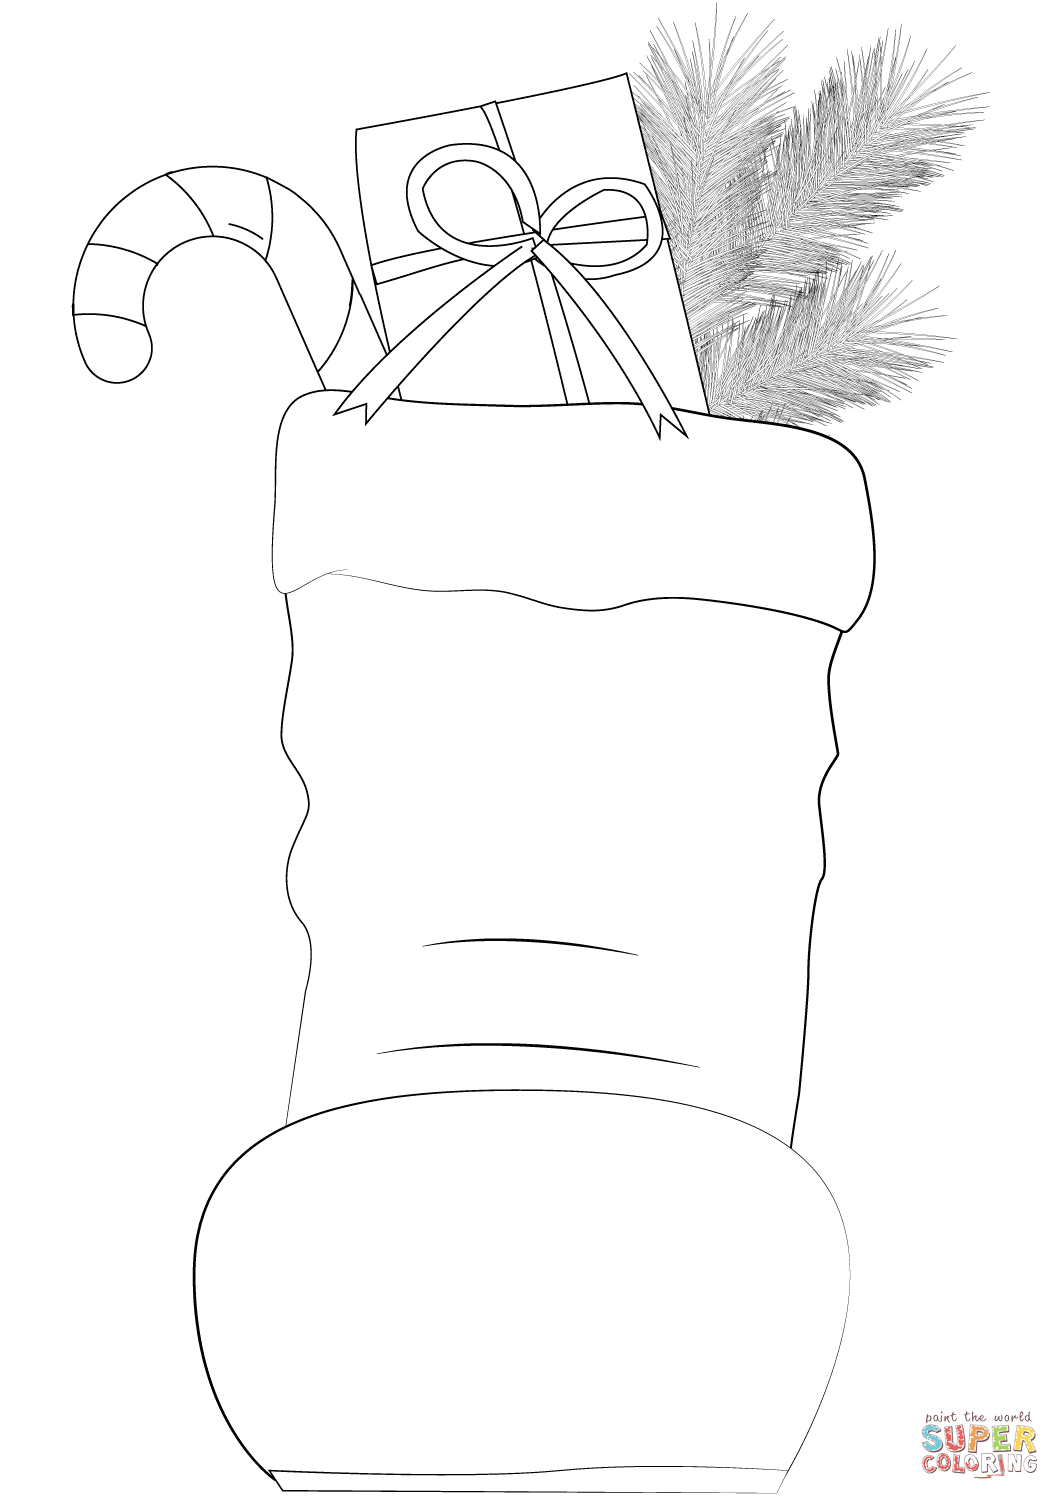 Santa Boots Coloring Sheet With Claus Page Free Printable Pages